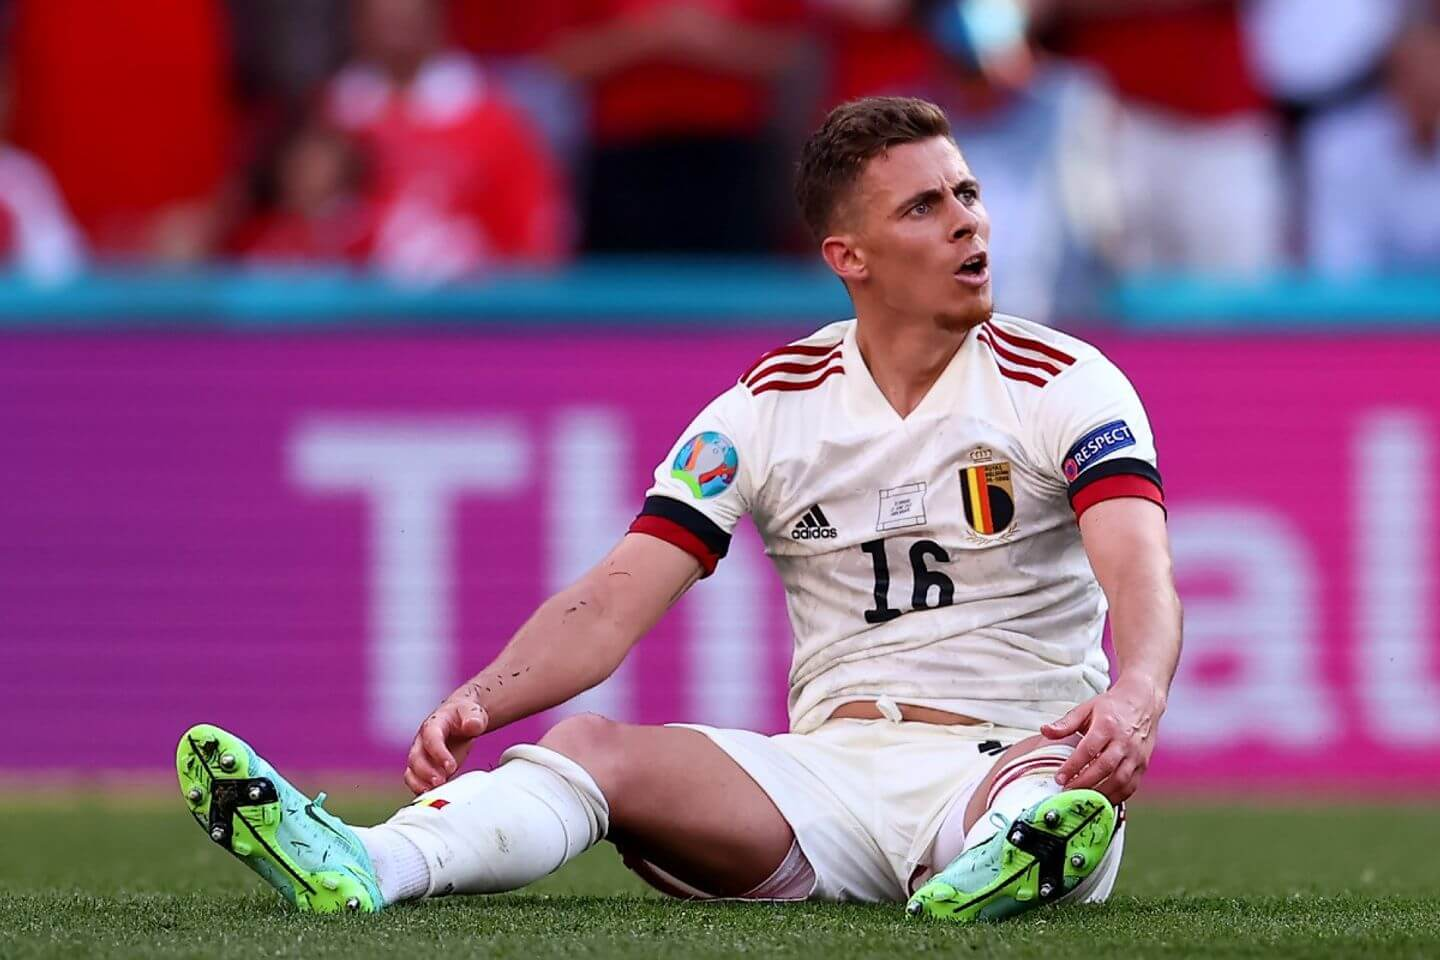 Thorgan Hazard: Belgium winger will not travel to face Finland in Euro 2020 group game - The Athletic